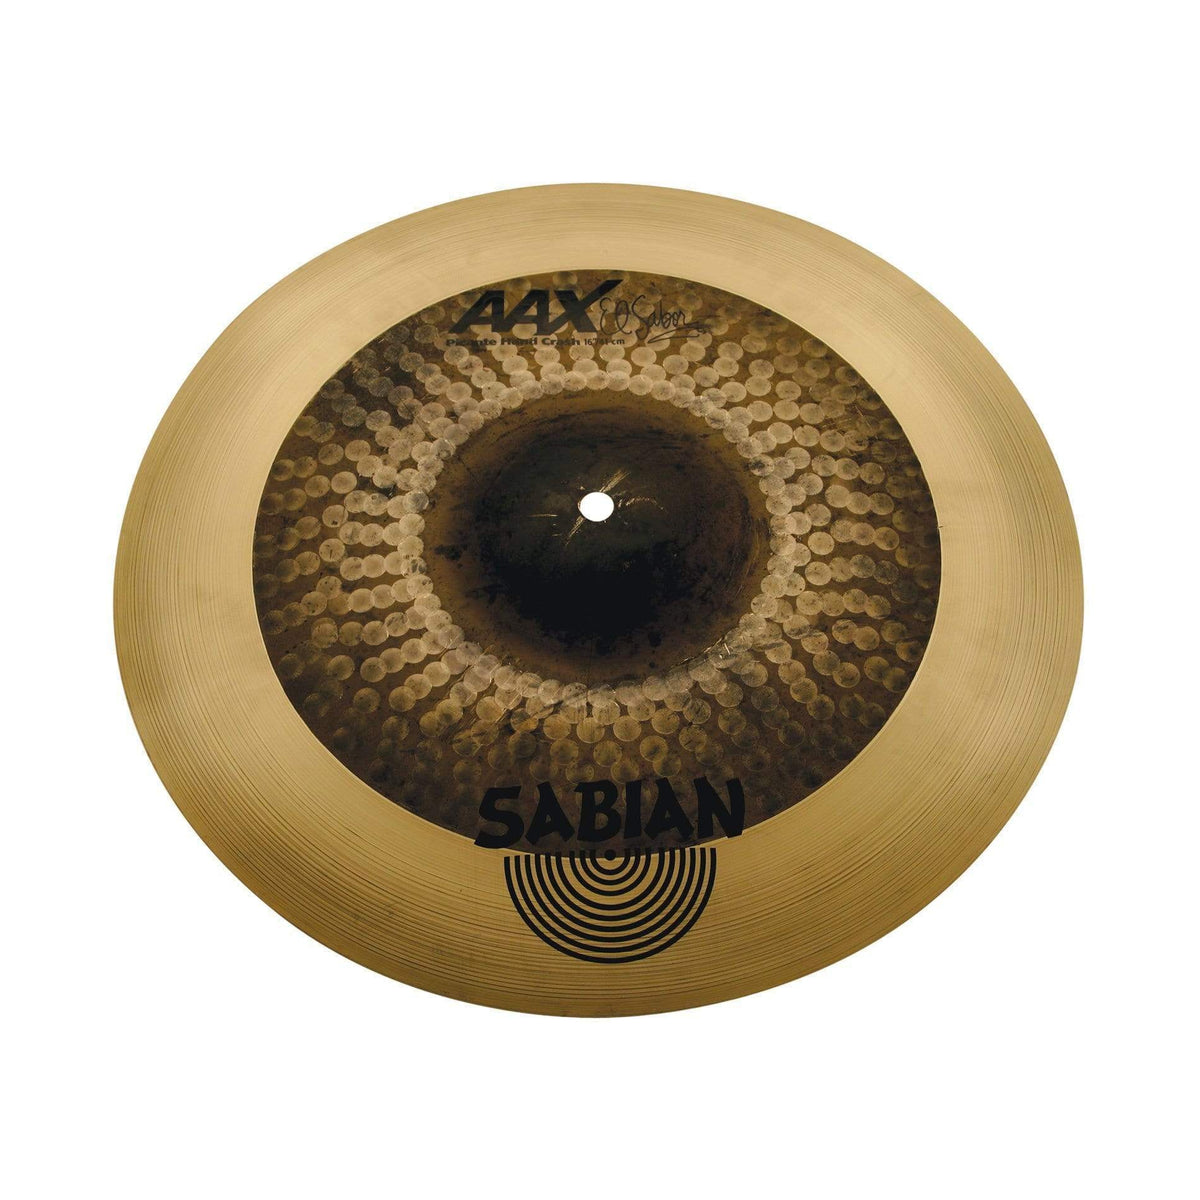 "vendor-unknown Crash Cymbal SABIAN - 21660XH 16"" AAX El Sabor Picante Hand Crash"